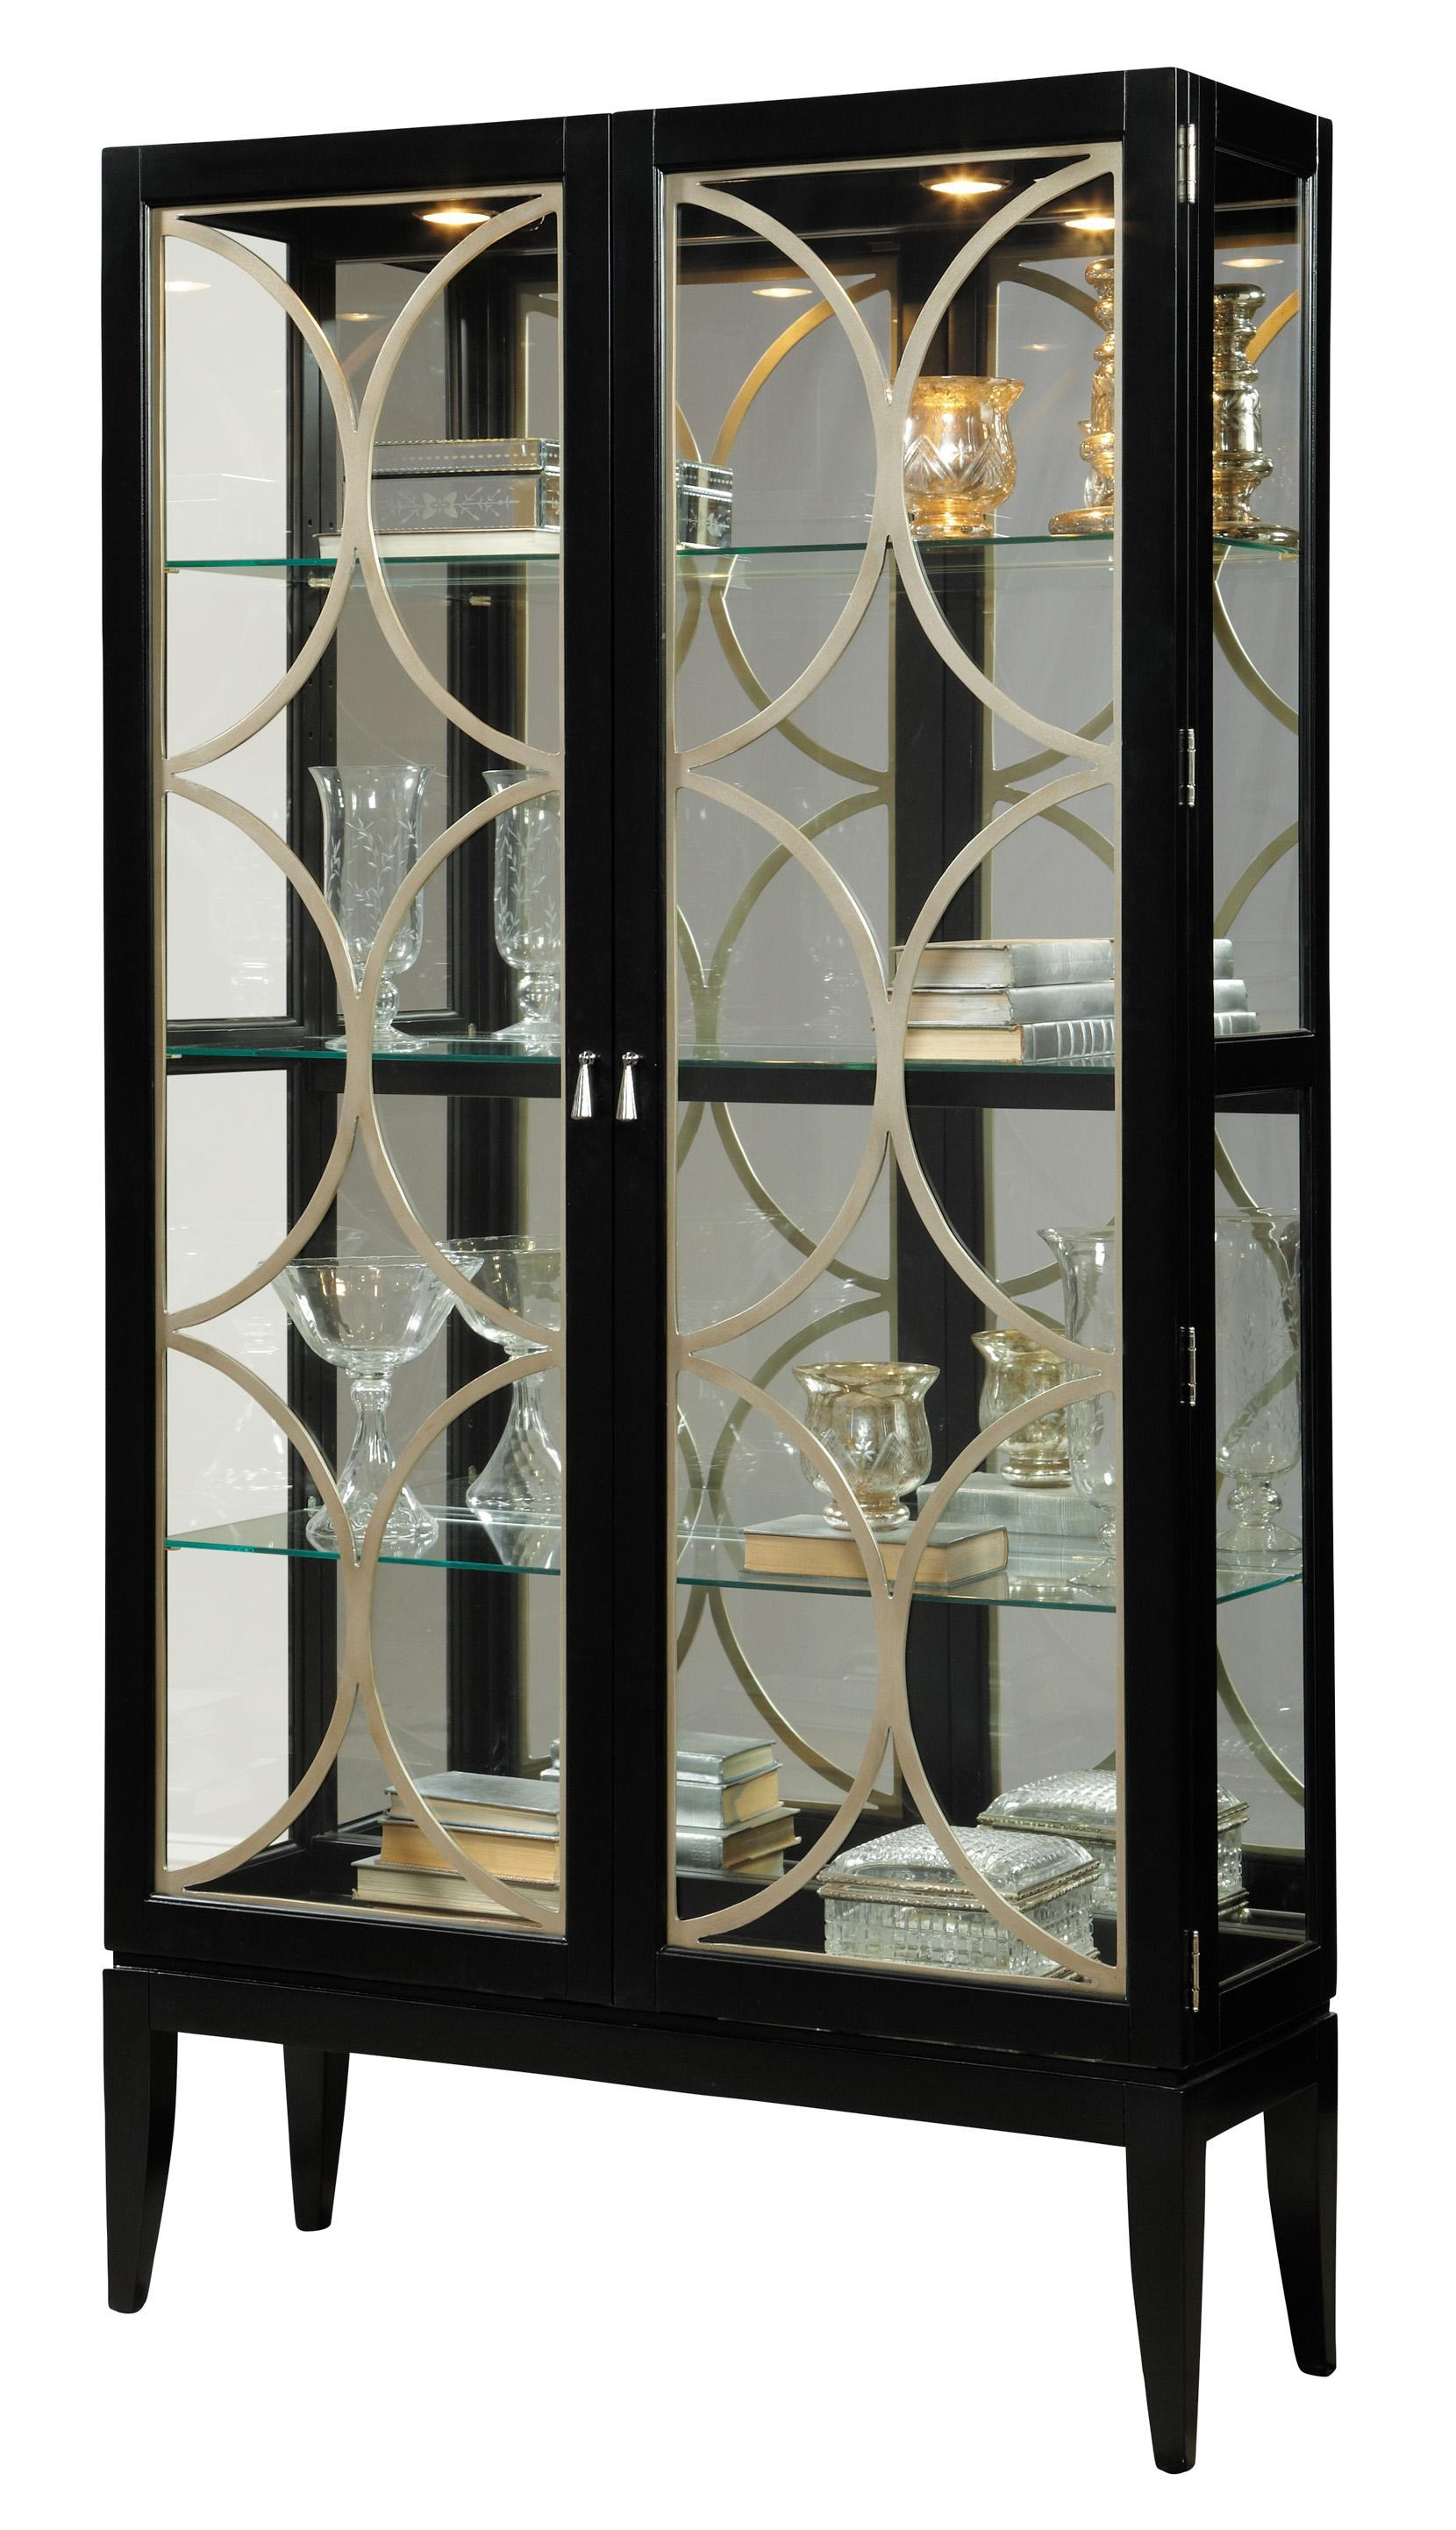 Curios Two Door Curio Cabinet W/ Mirrored Back By Pulaski Furniture